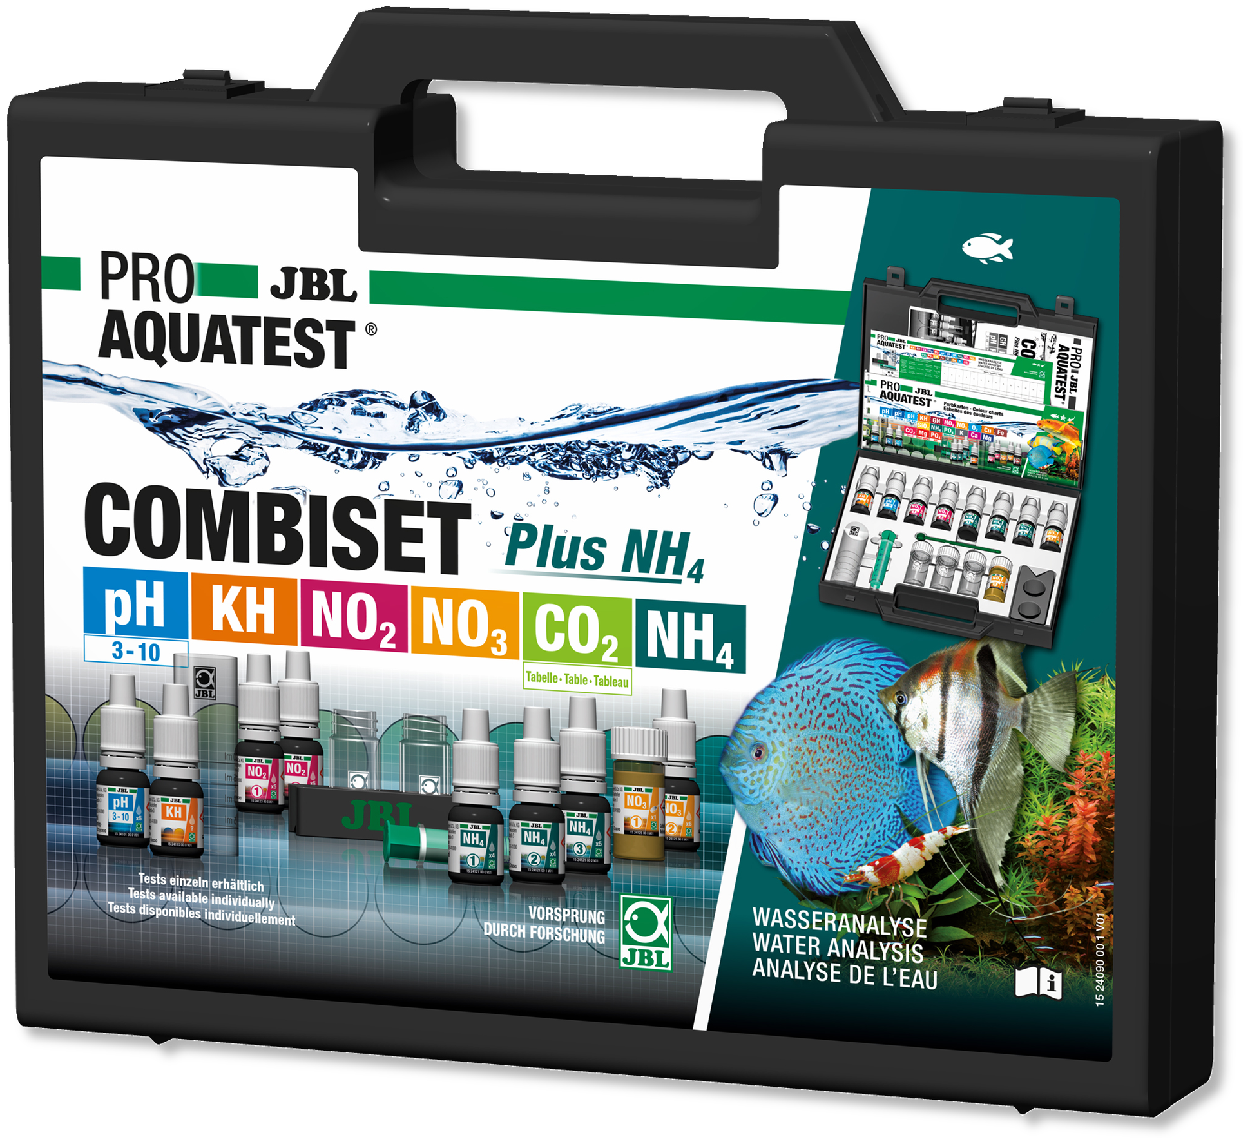 JBL ProaquaTest CombiSet Plus NH4